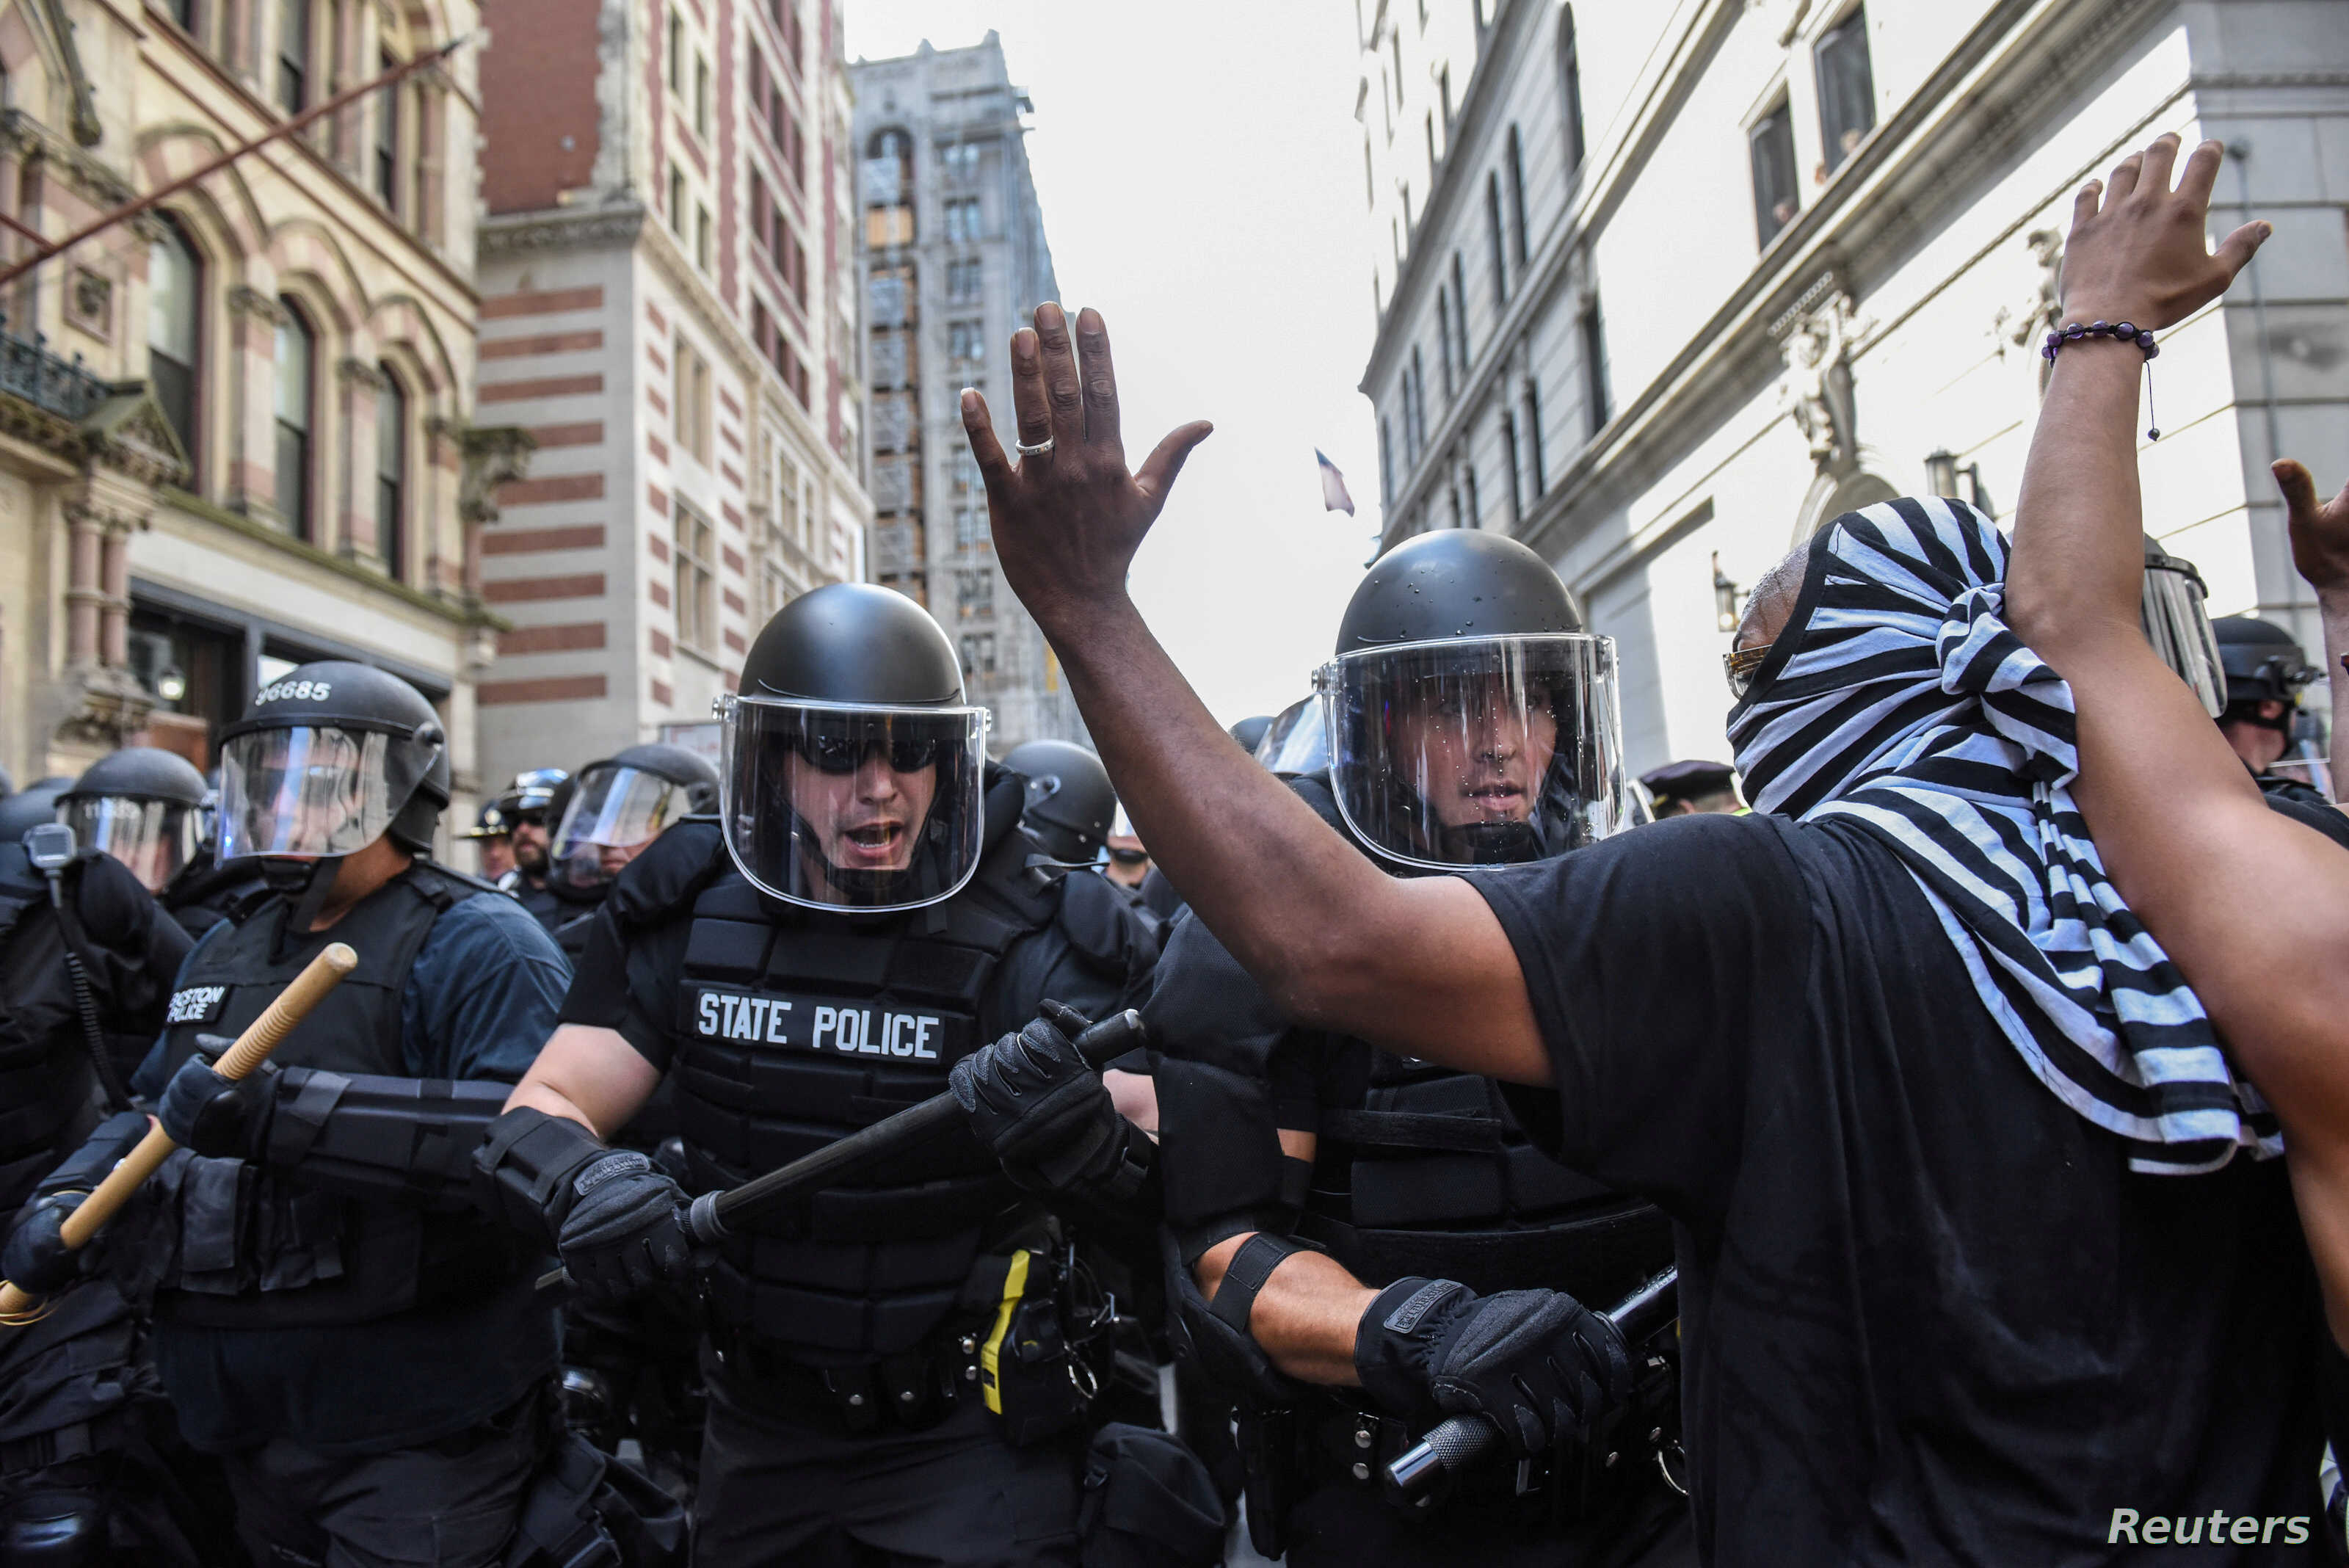 33 Arrested During Boston Rally Protest Heading to Court